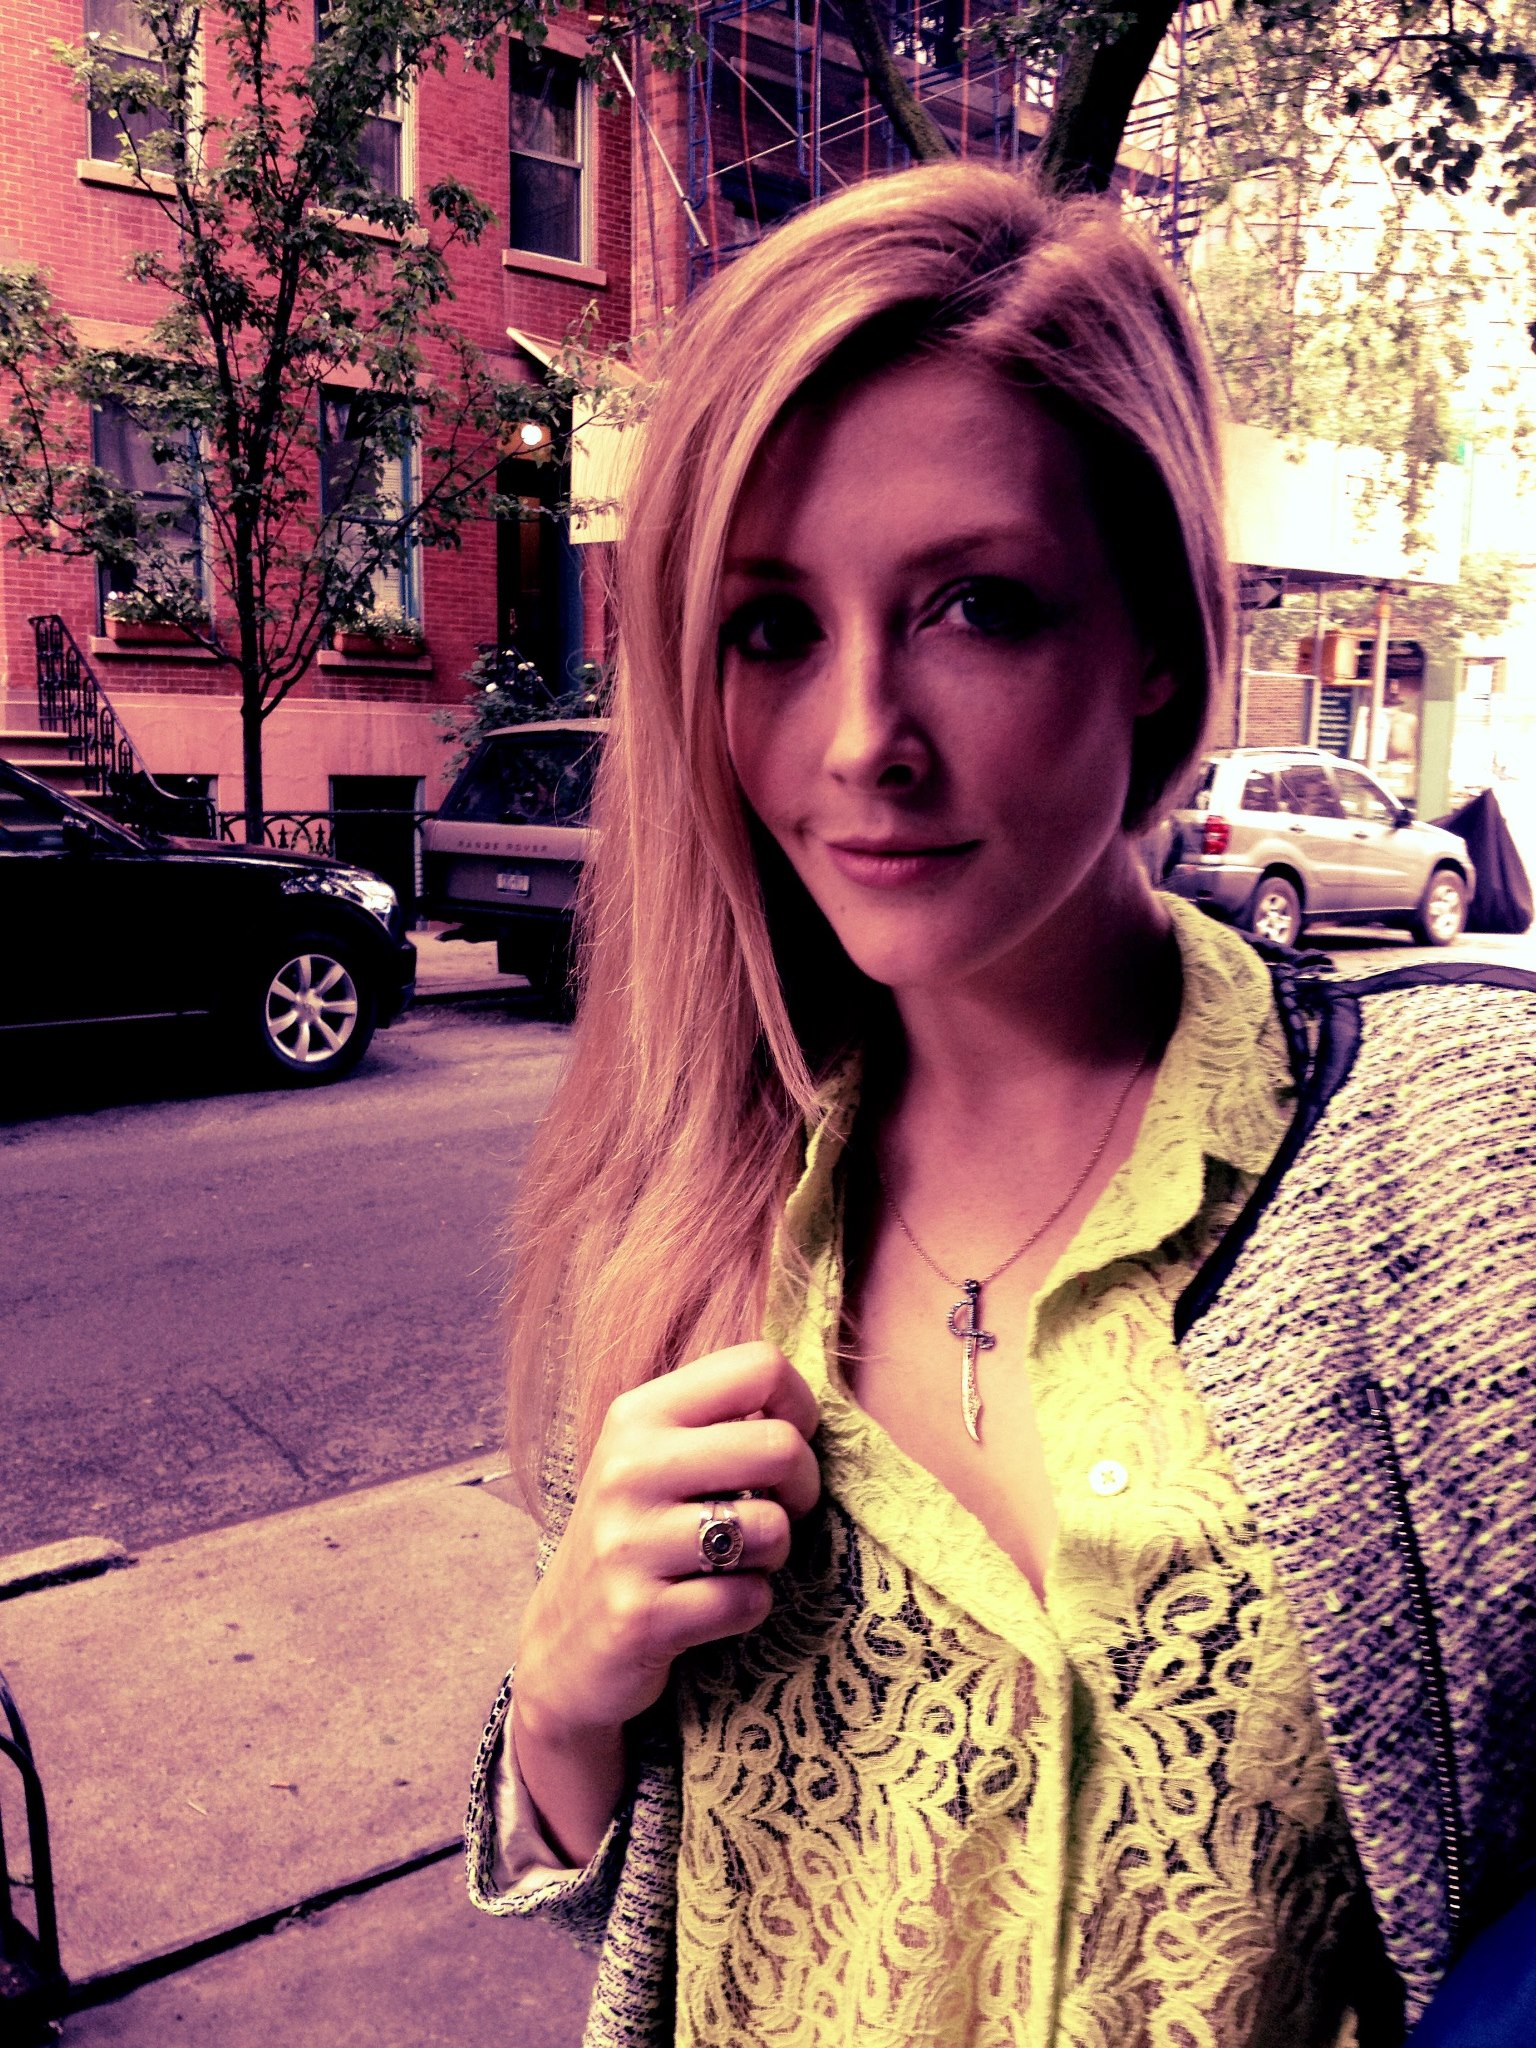 30 - Jennifer Finnigan - now.jpg